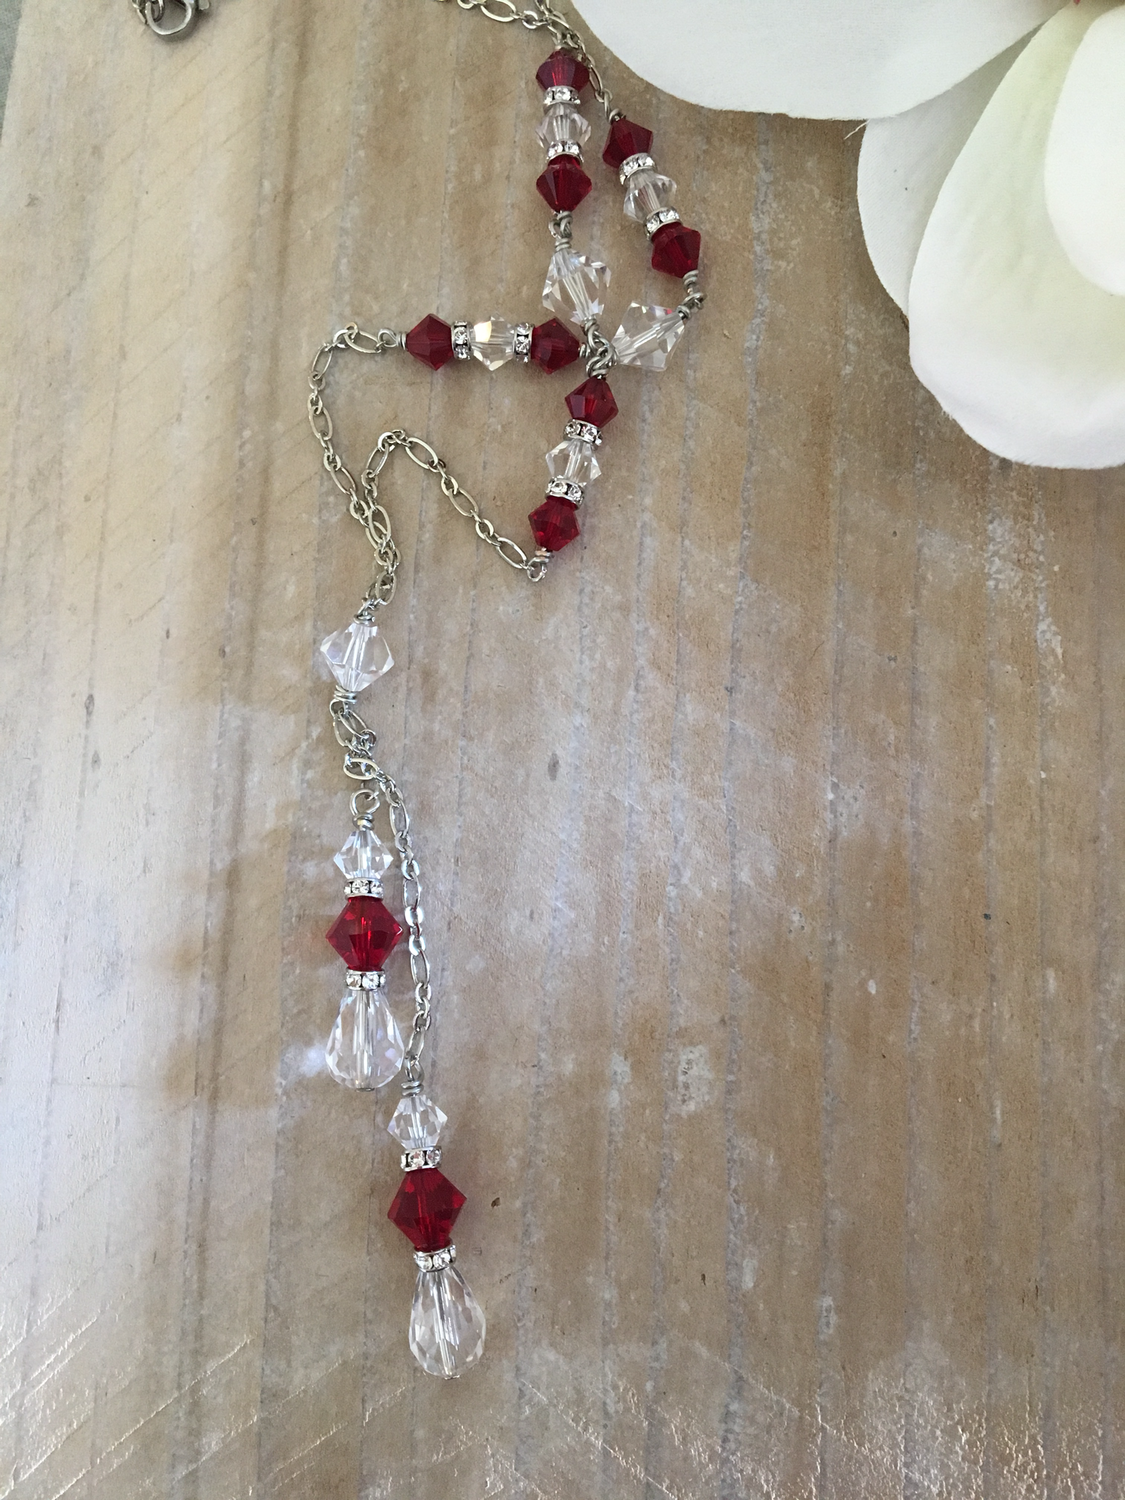 Christine Anderson Special Order Christmas necklace